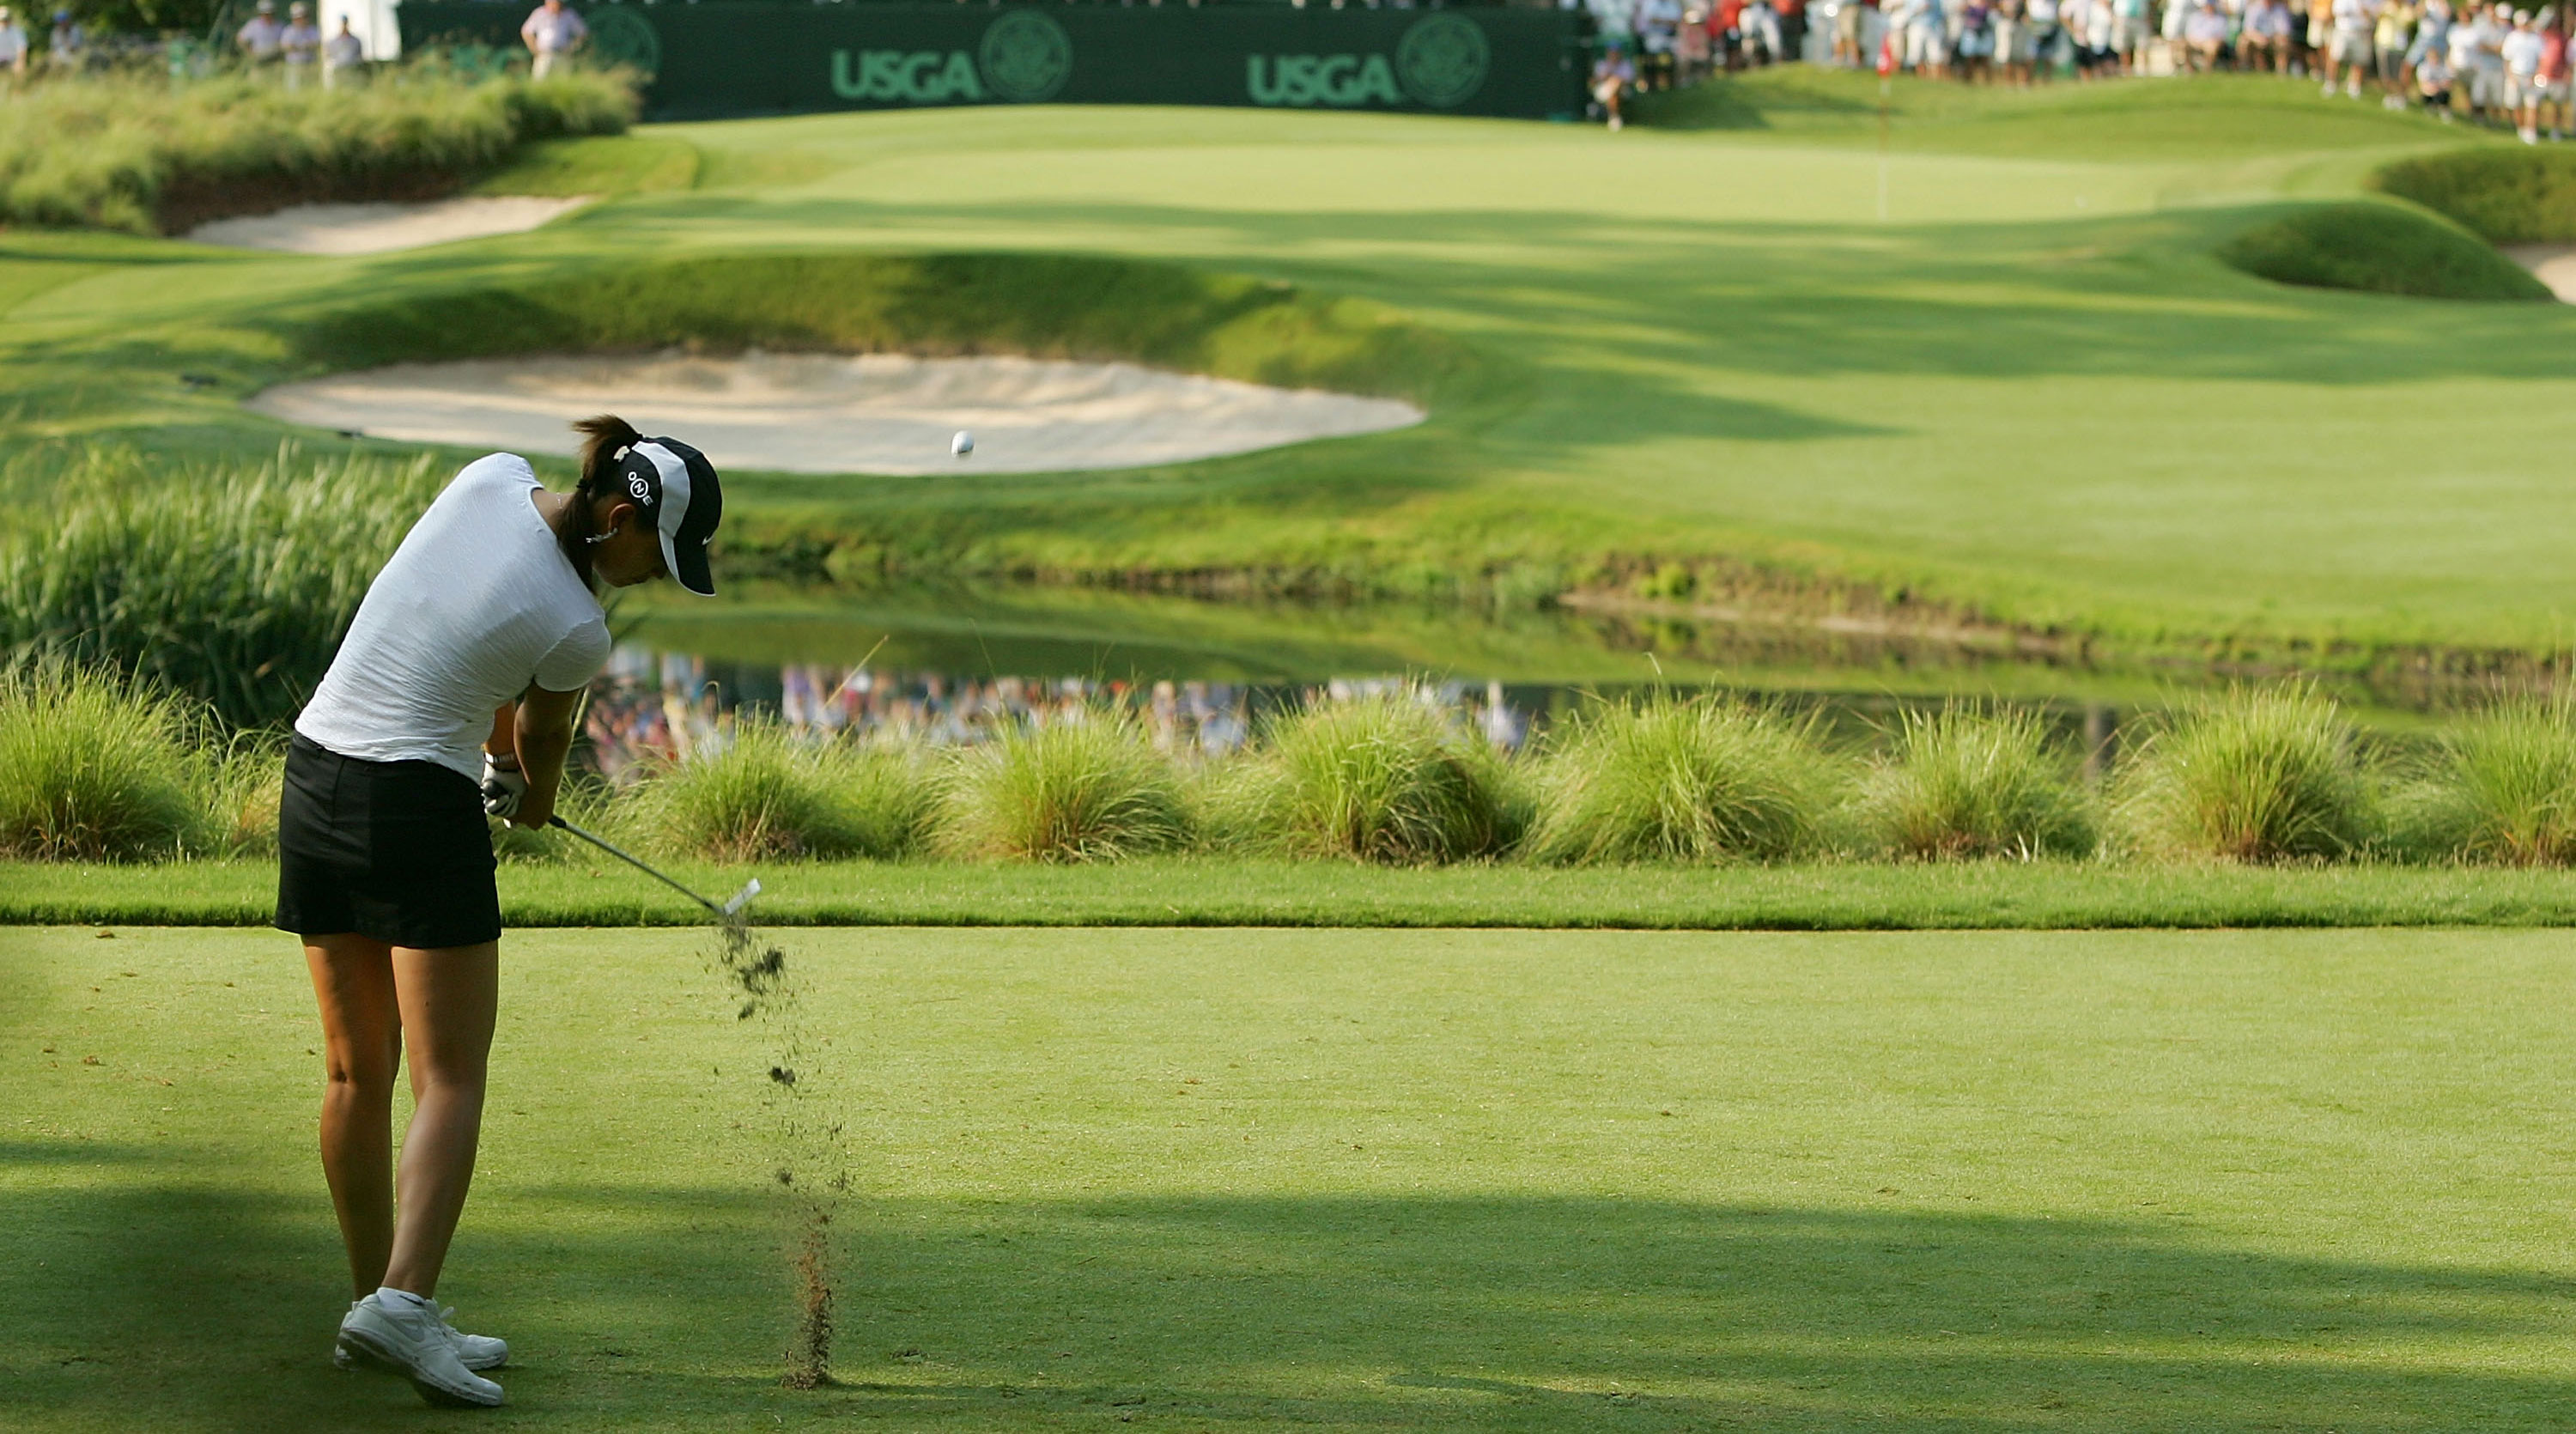 Michelle Wie plays her approach at Pine Needles' 2nd at the 2011 U.S. Women's Open.